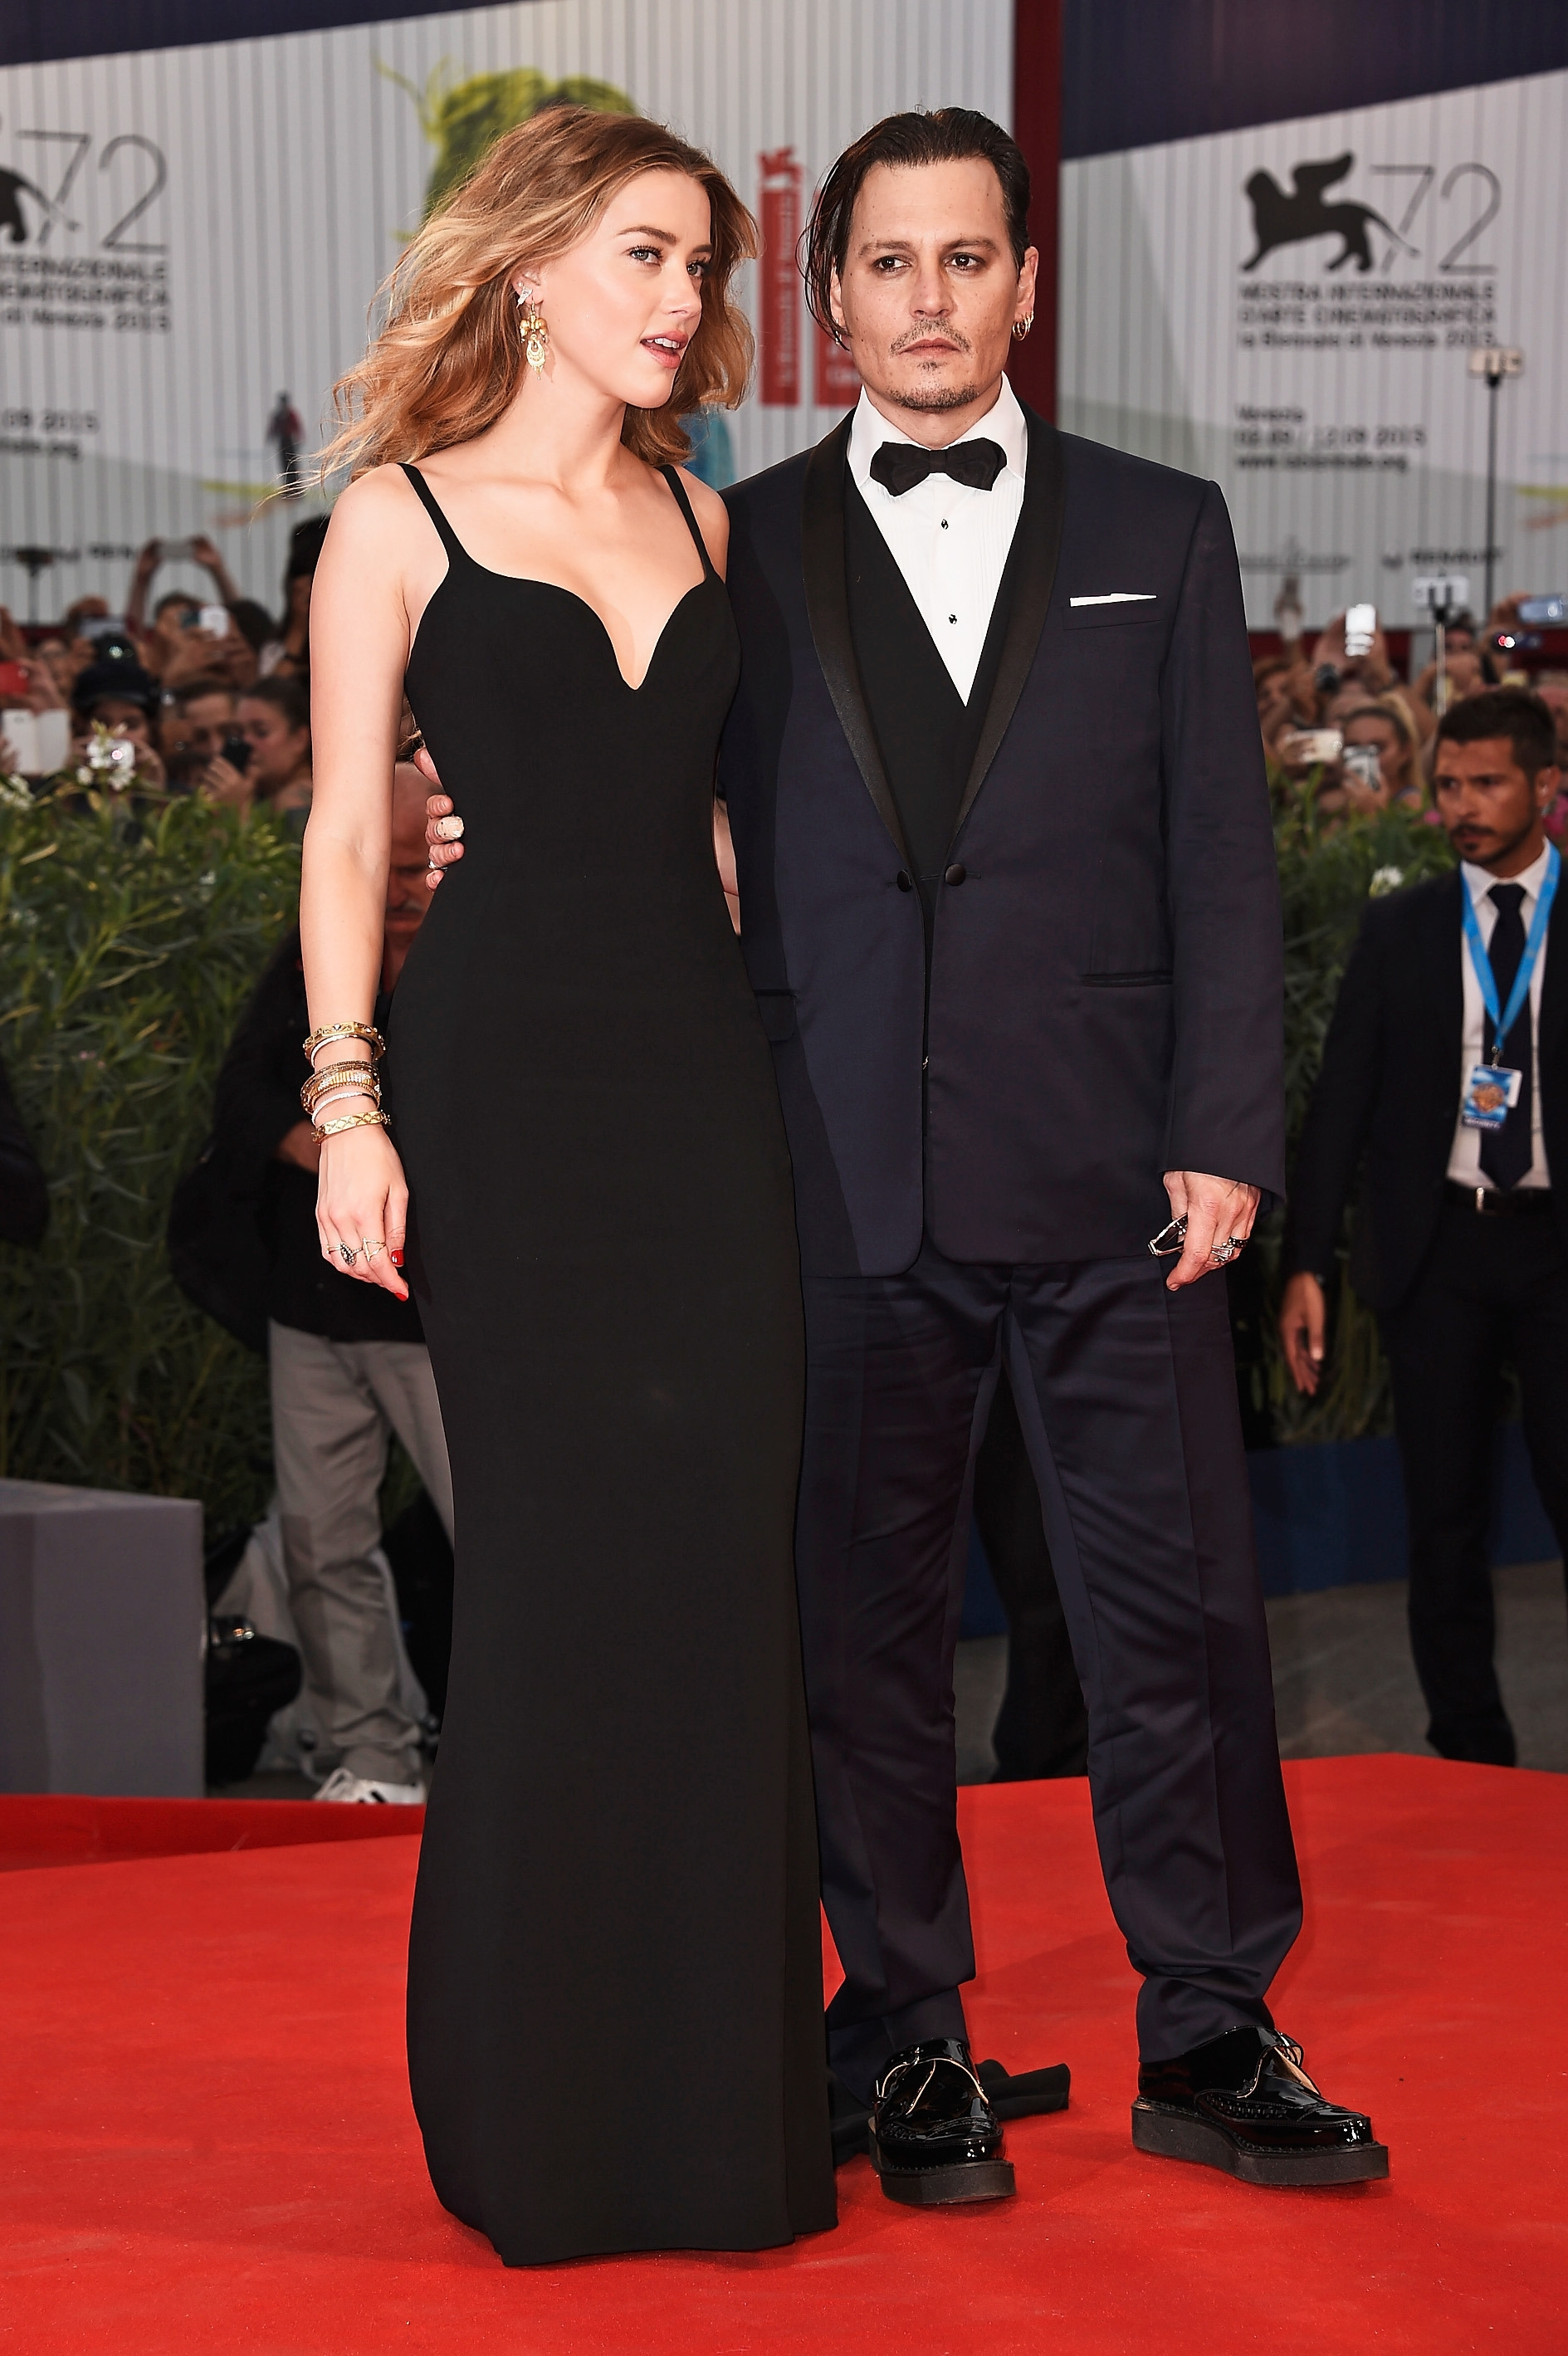 """Newlyweds Johnny Depp and Amber Heard made a rare public appearance at a premiere for """"Black Mass"""" Friday during the 72nd Venice Film Festival."""